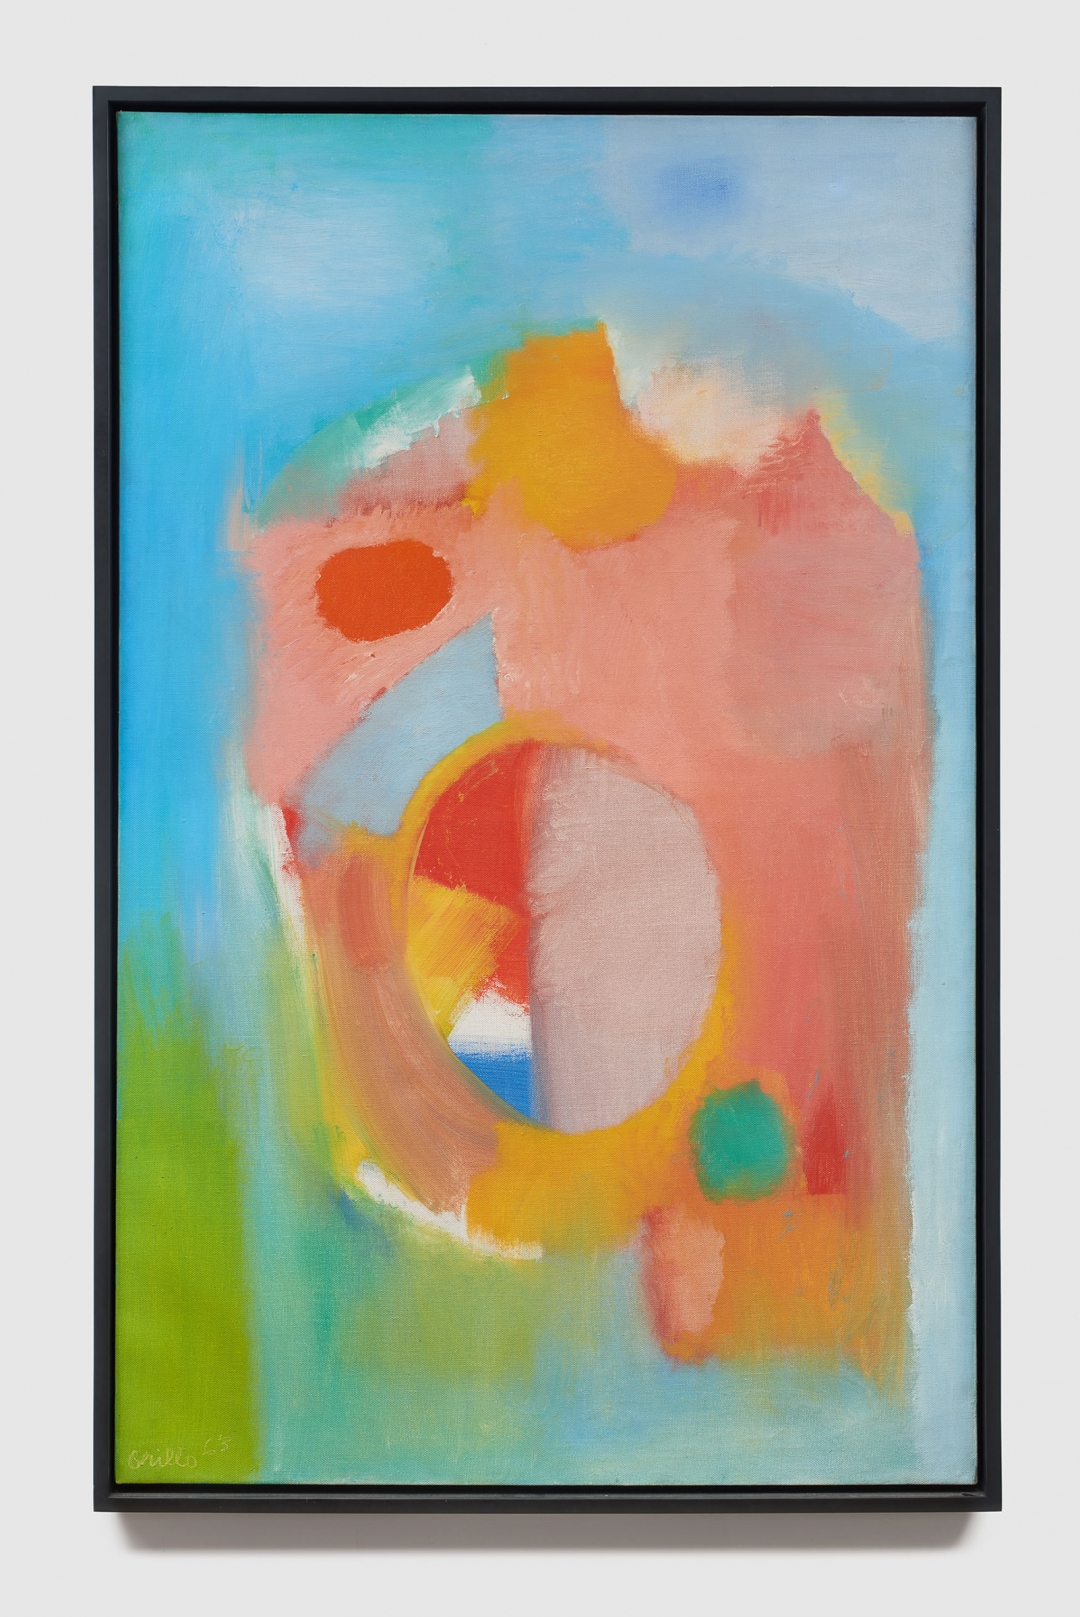 John Grillo, <i>Untitled</i>, 1963, Oil on canvas, 53h x 33 1/4w in (134.62h x 84.45w cm)